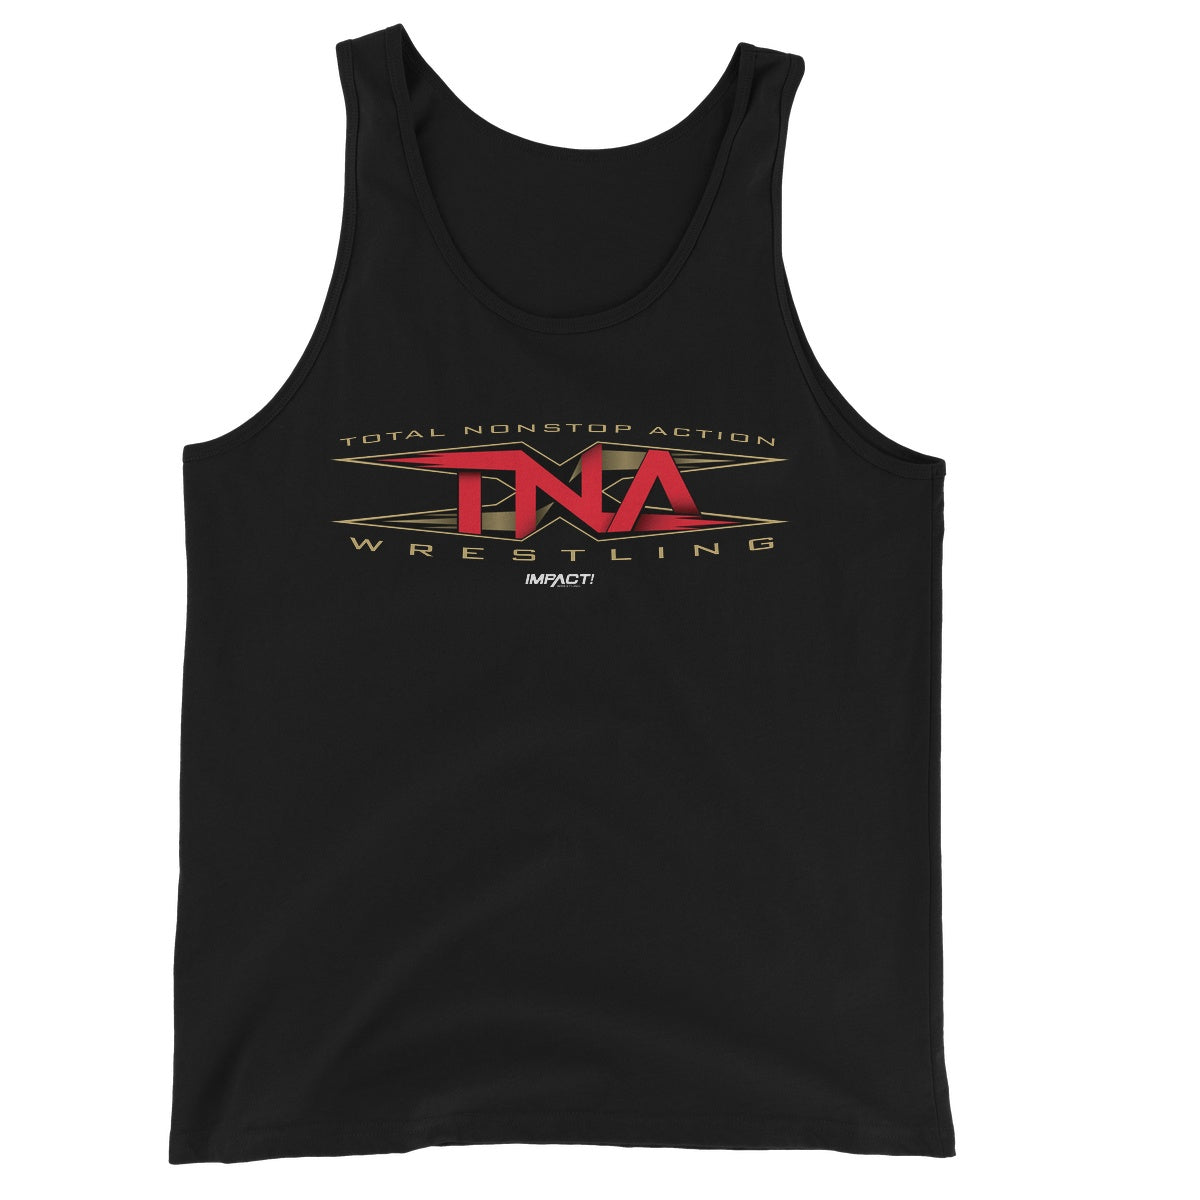 TNA - Total Non-Stop Action Wrestling Unisex Jersey Tank Top